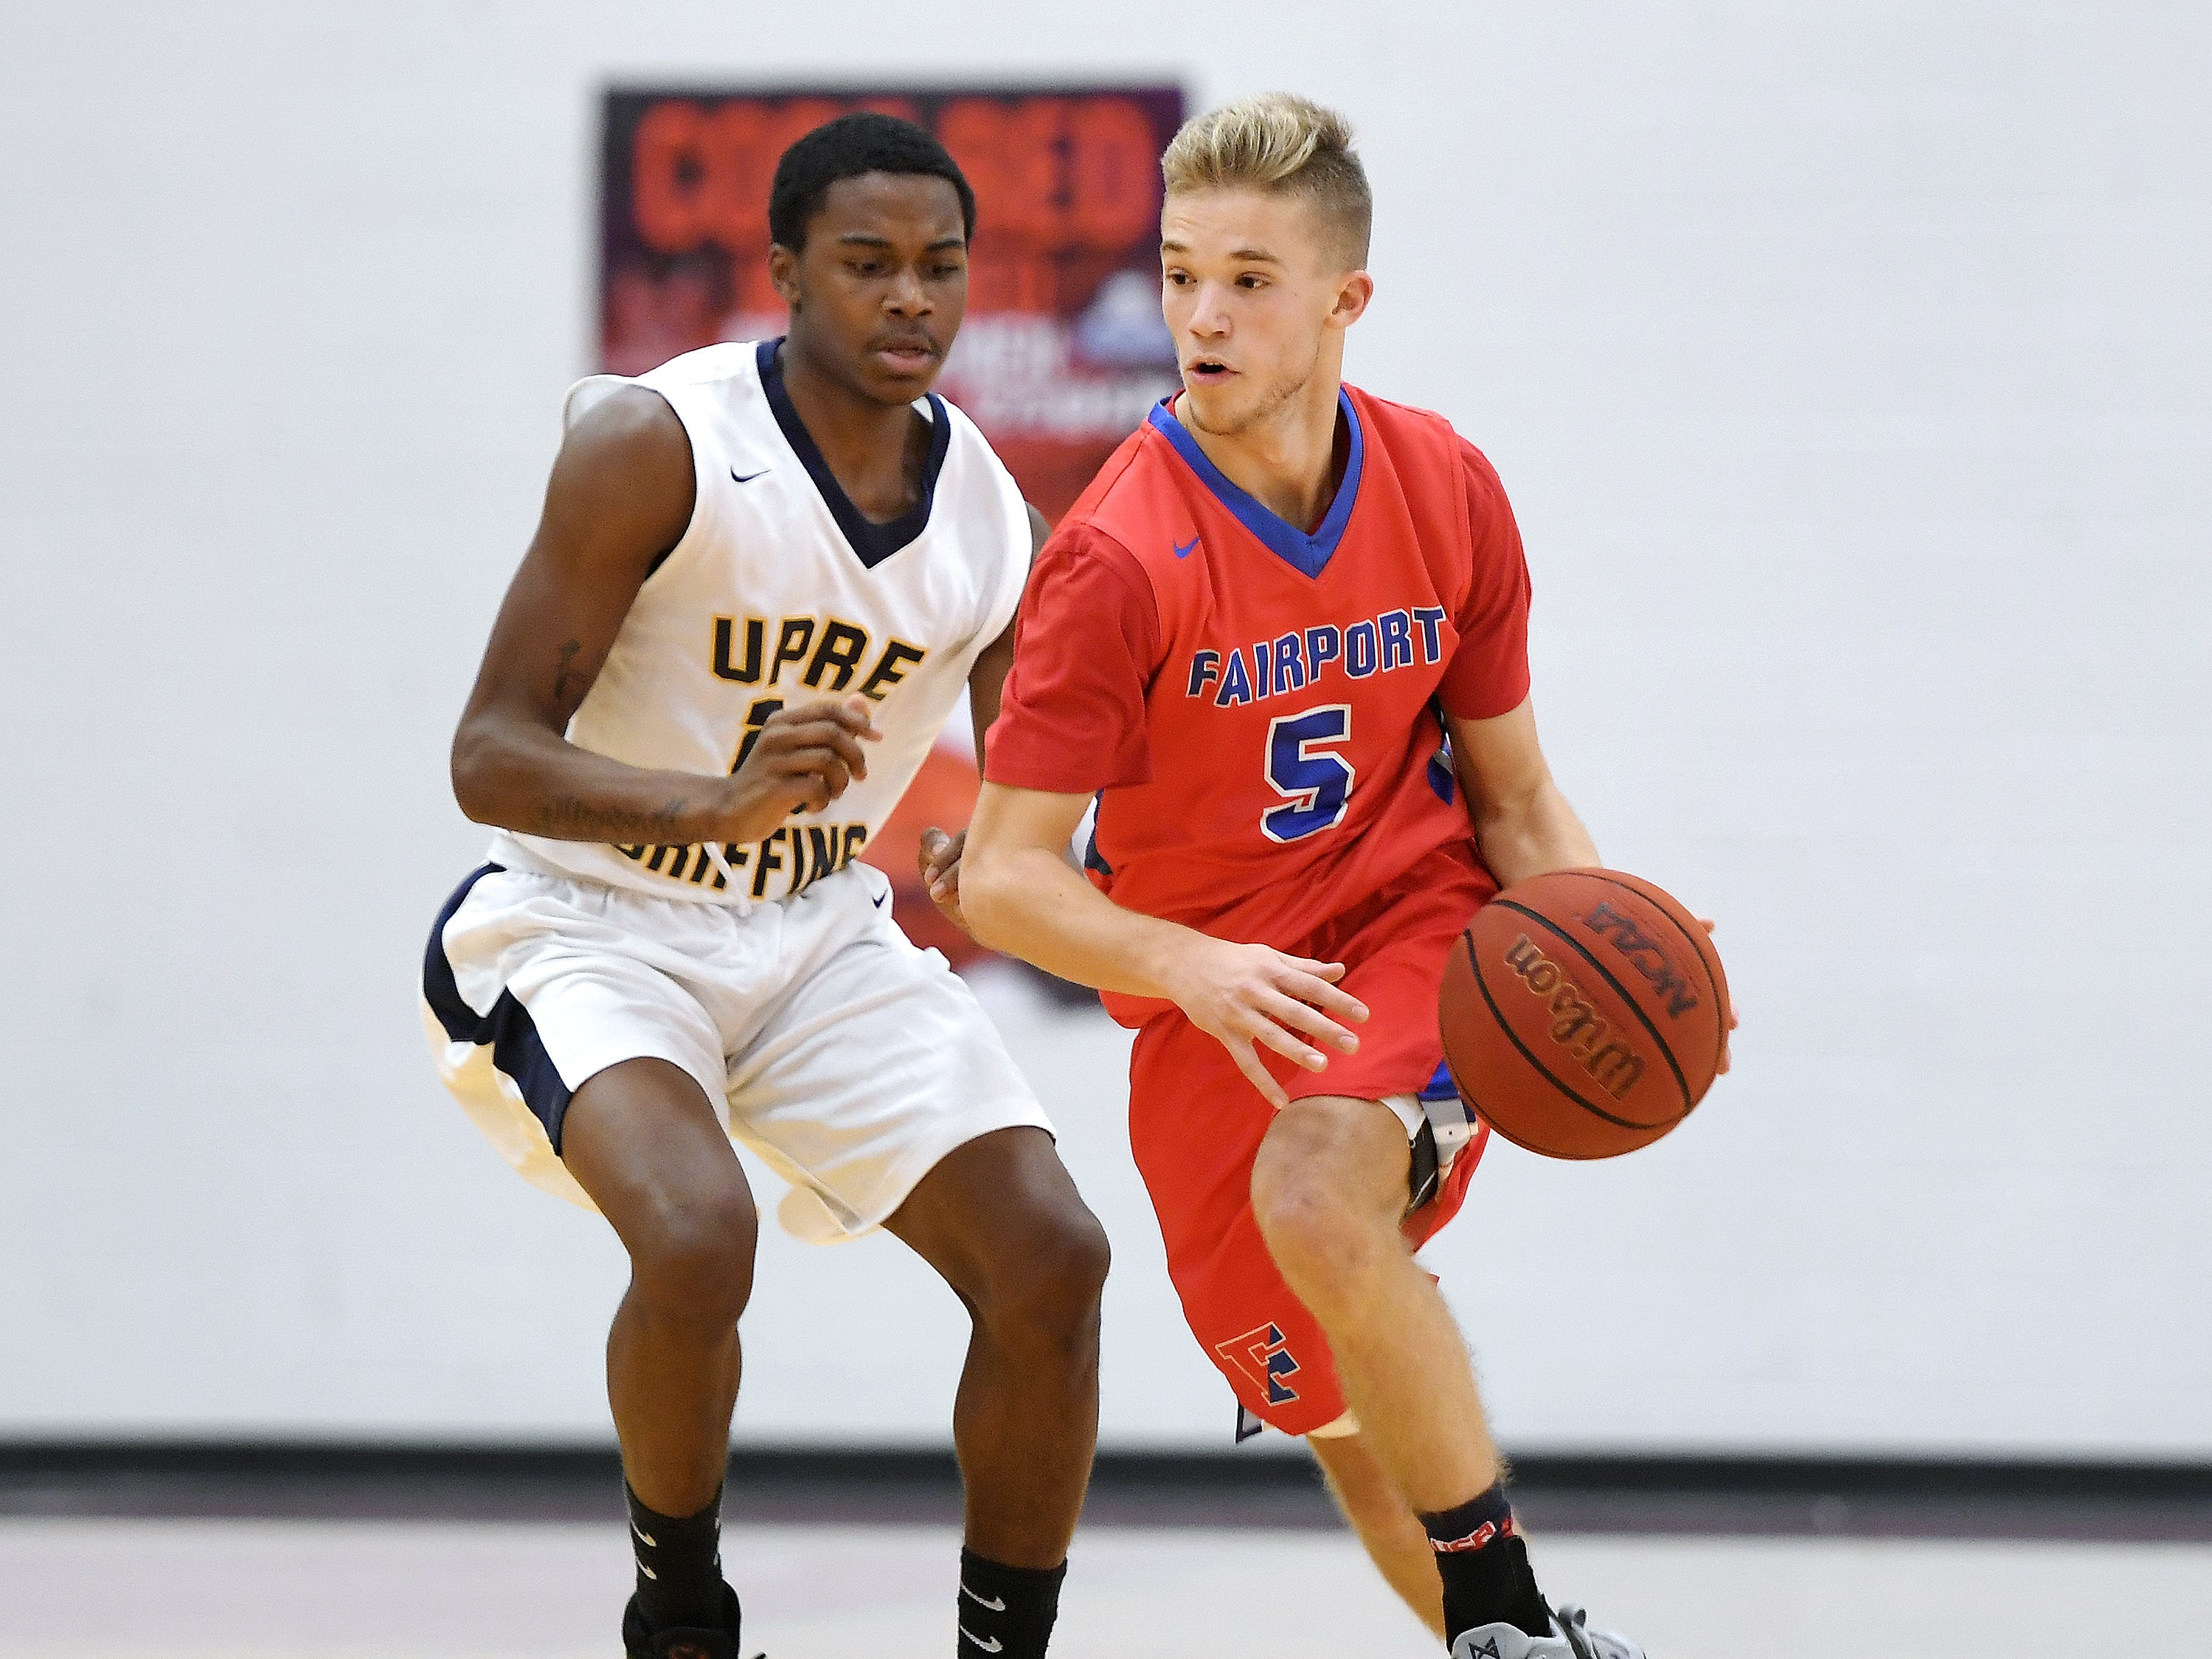 Fairport's Ryan Kennedy, right, dribbles past University Prep's Harold Boggs McCulough during a regular season game played at Roberts Wesleyan College on Wednesday, Nov. 28, 2018. Fairport beat University Prep 56-51.